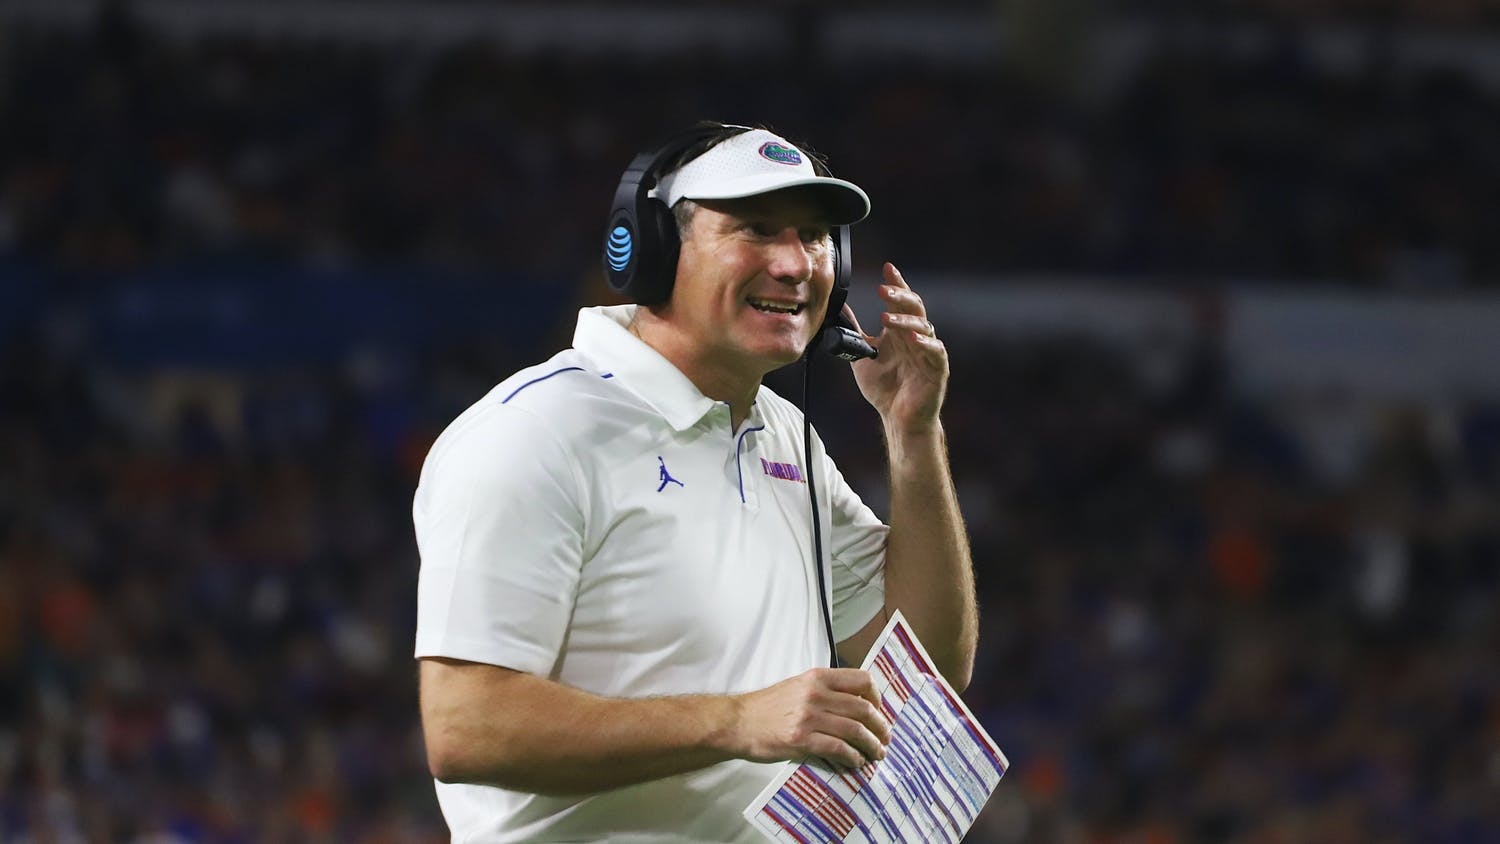 Florida head coach Dan Mullen spoke Monday about the team's first depth chart unveiled ahead of the season opener against Florida Atlantic.